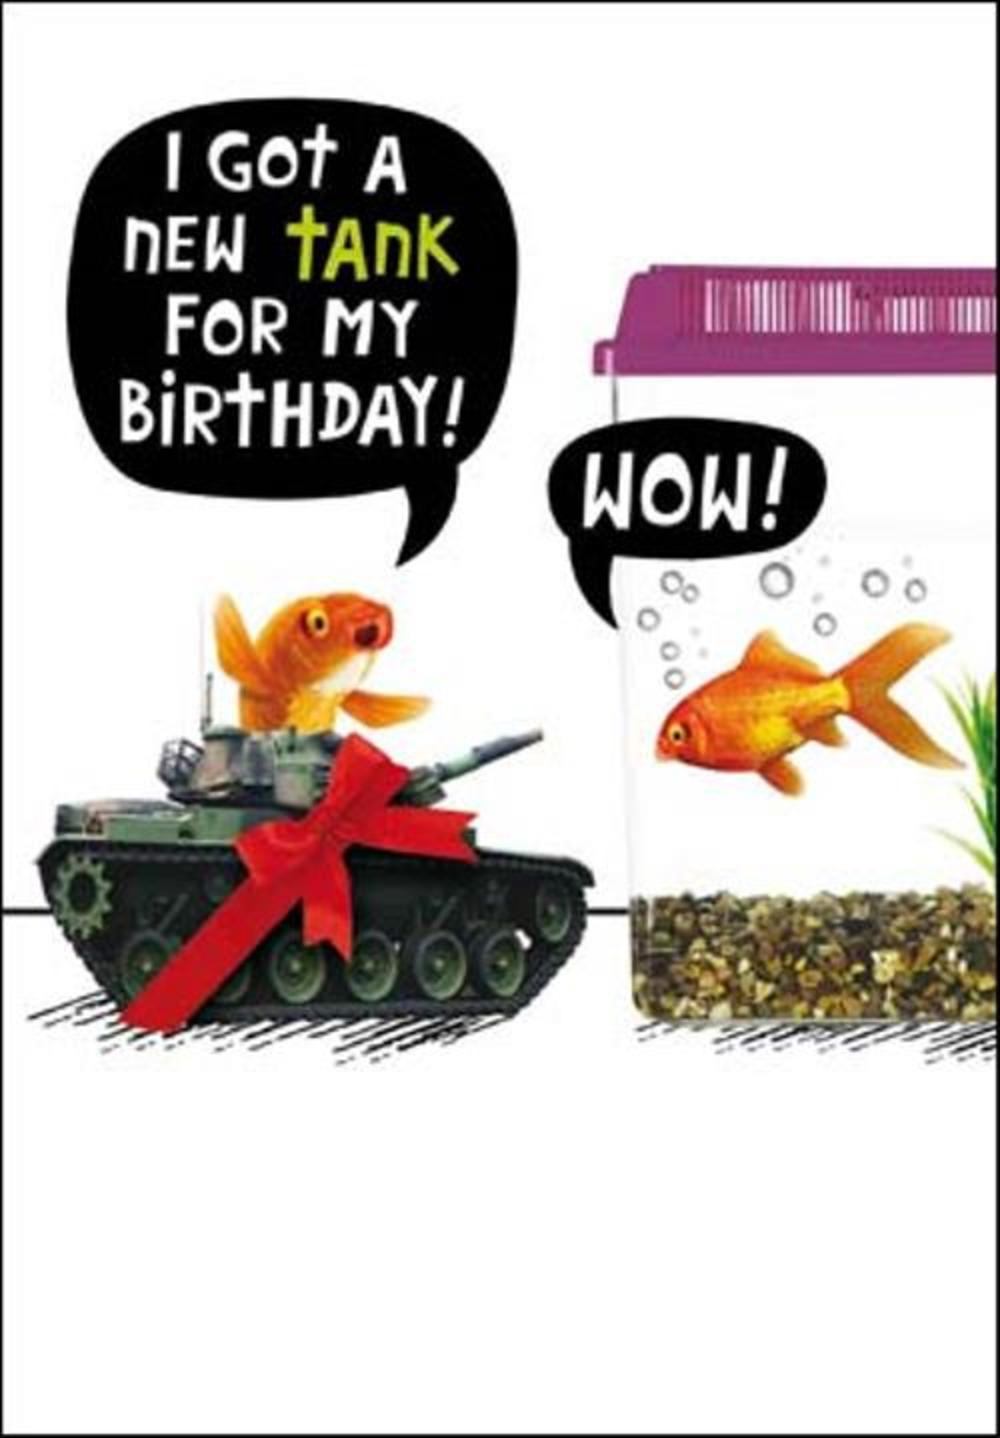 I Got A New Tank For My Birthday Funny Birthday Card